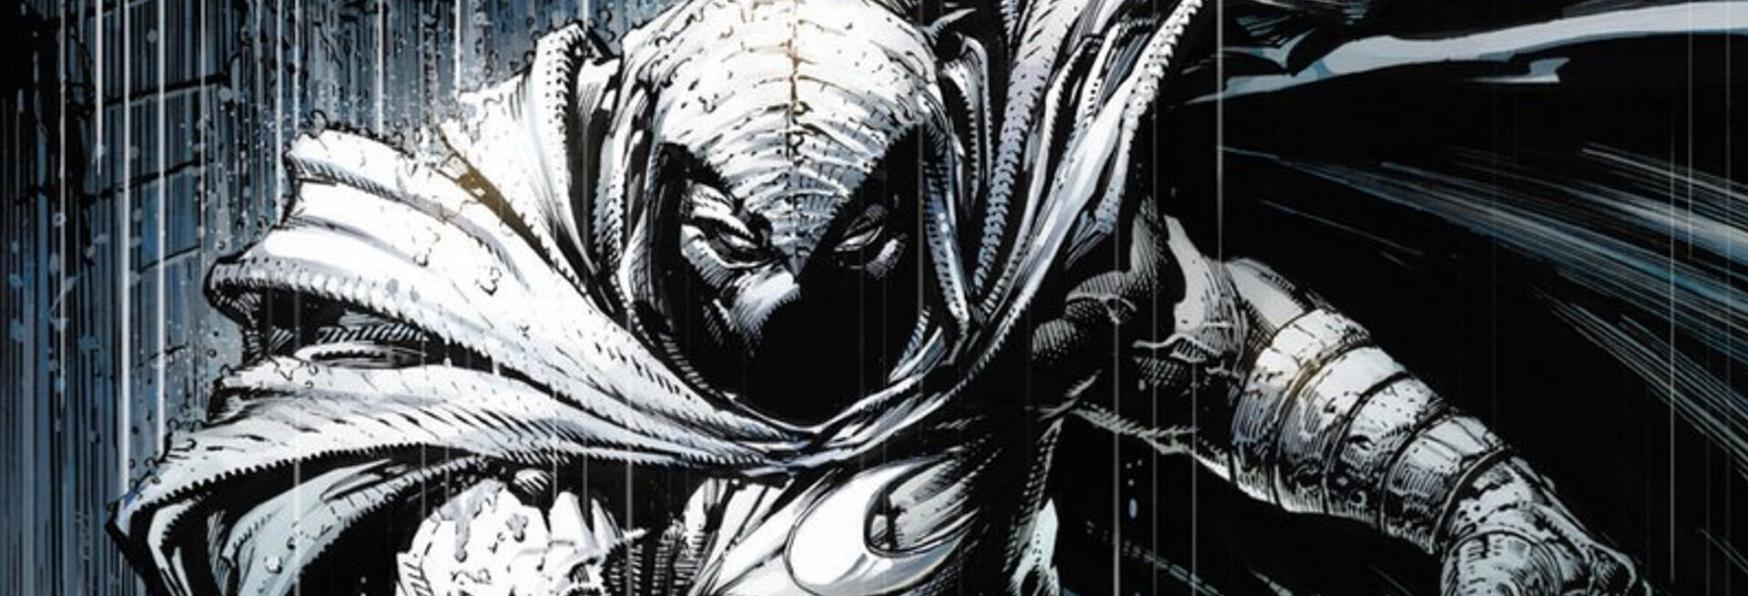 Moon Knight: a dirigere la Serie TV targata Marvel/Disney ci sarà Mohamed Diab